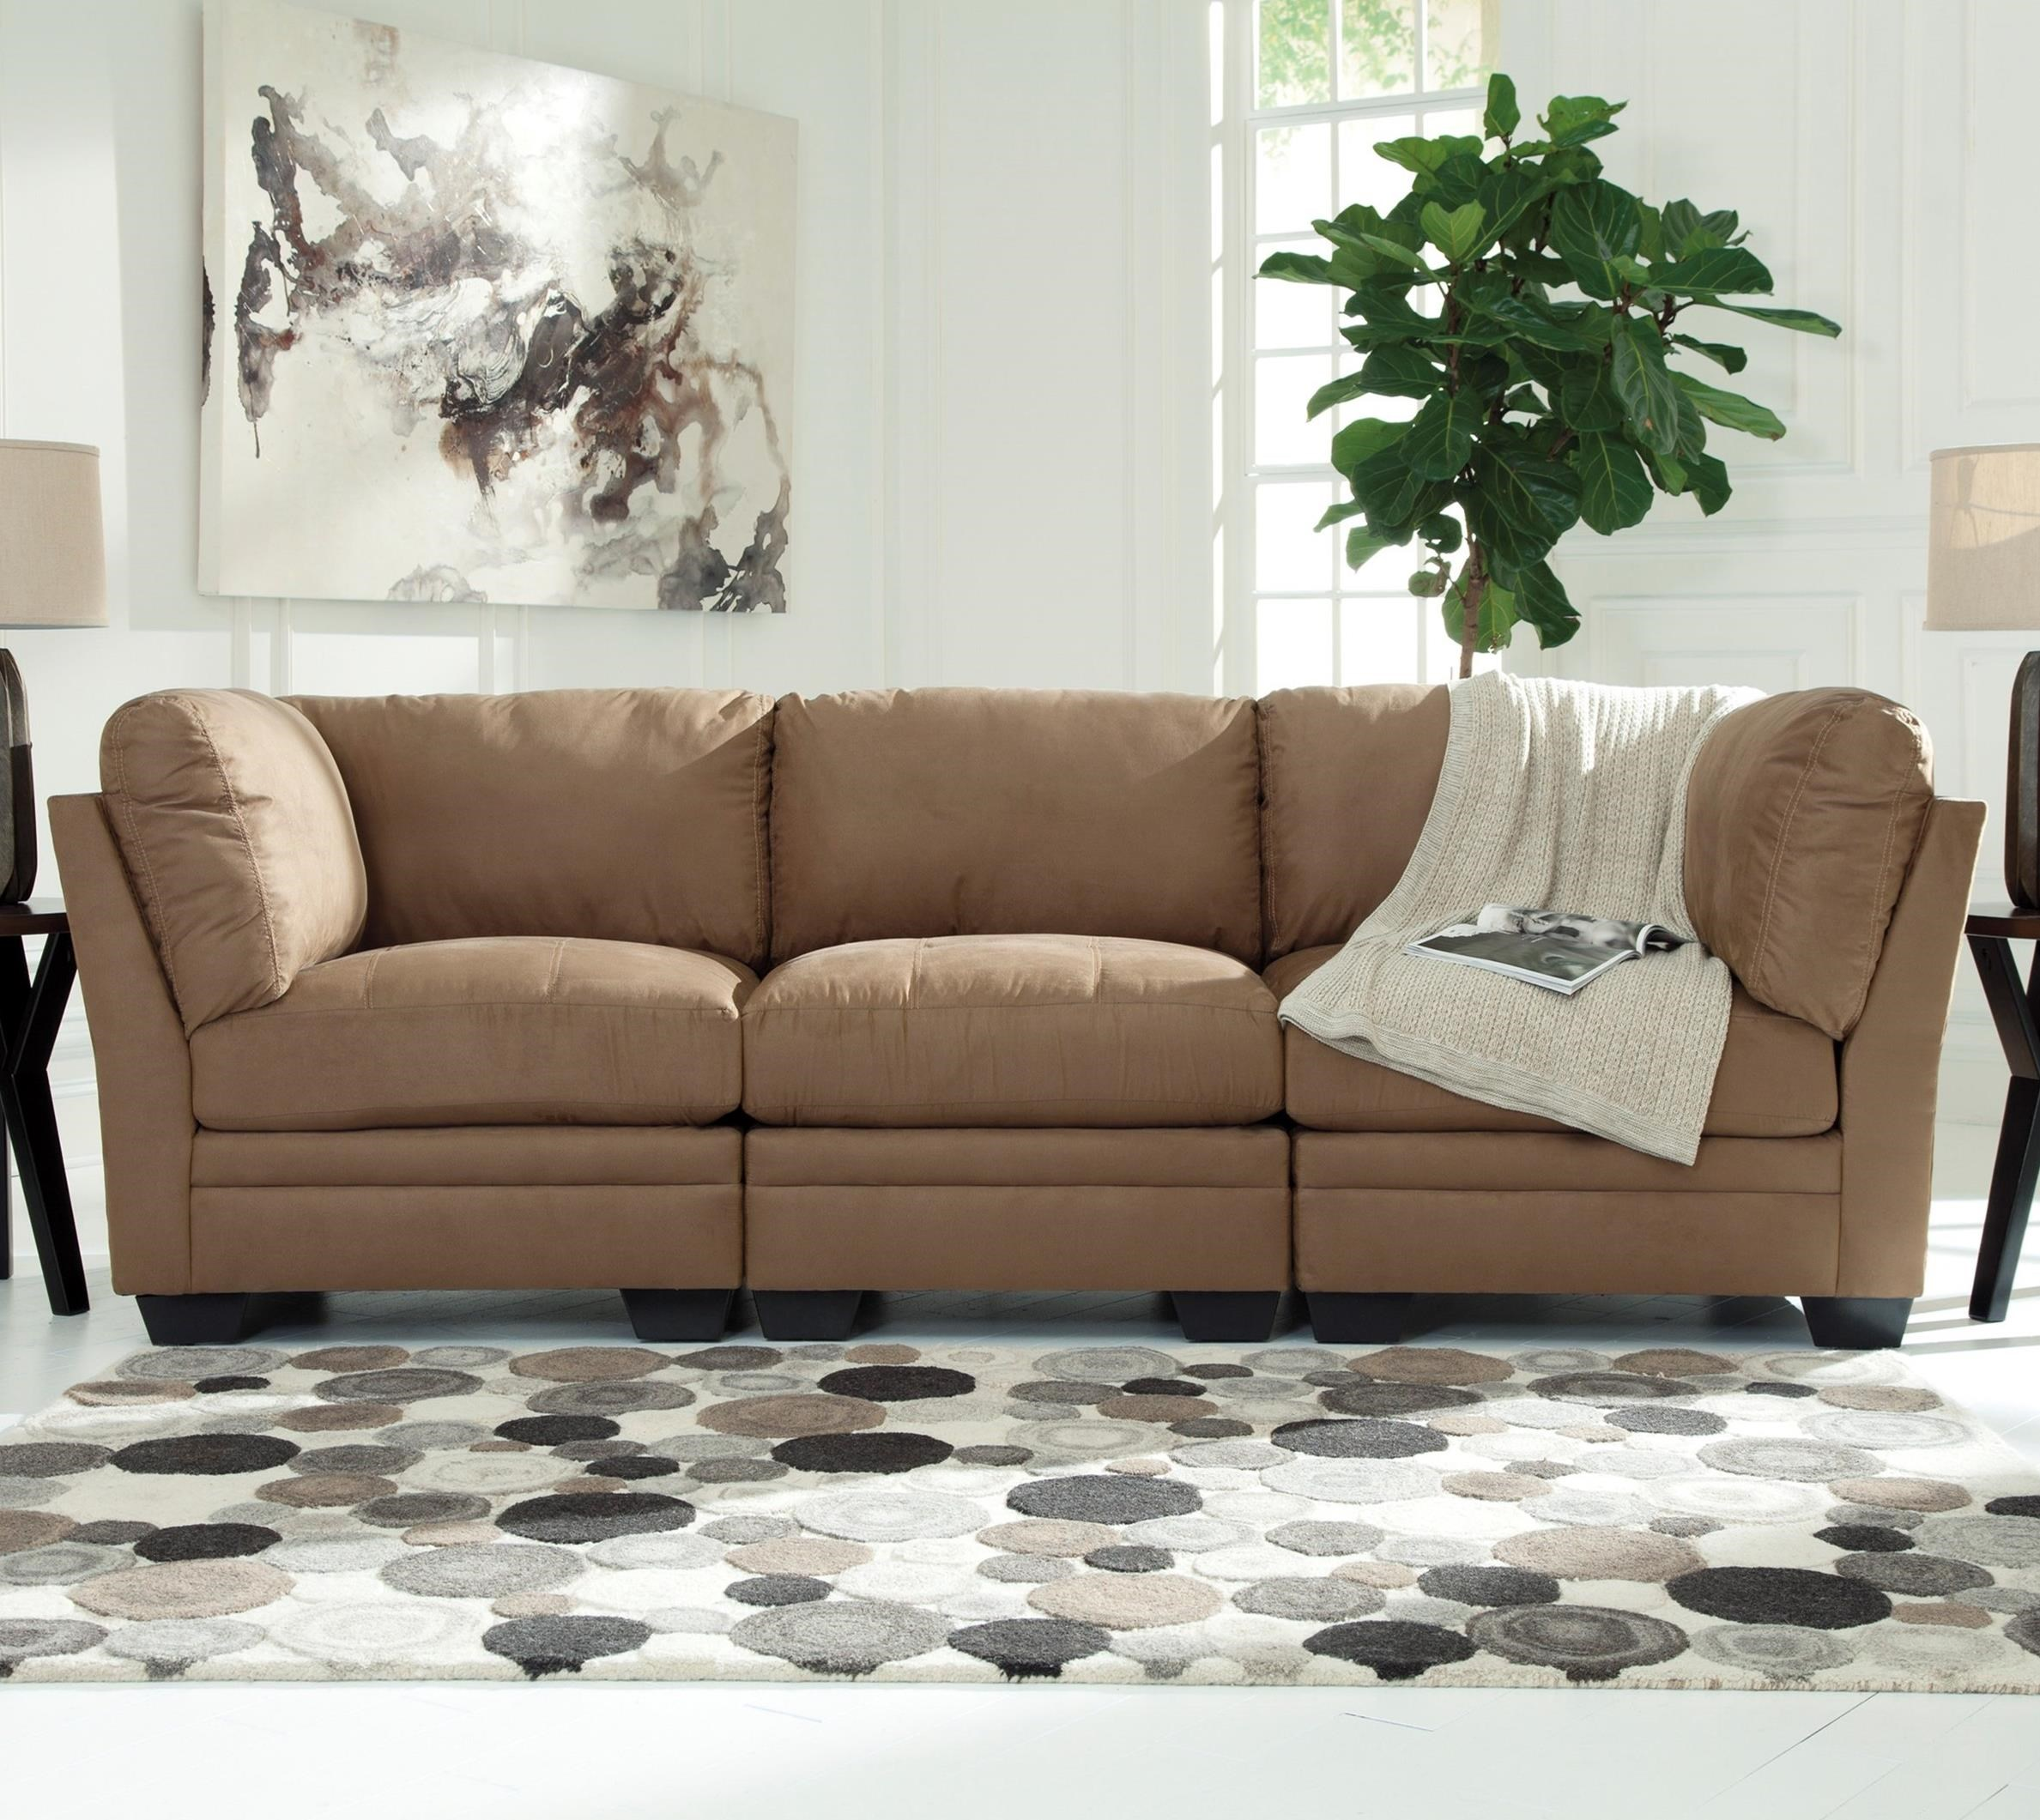 Signature Design by Ashley Iago Modular Sofa - Item Number: 6180546+2x51